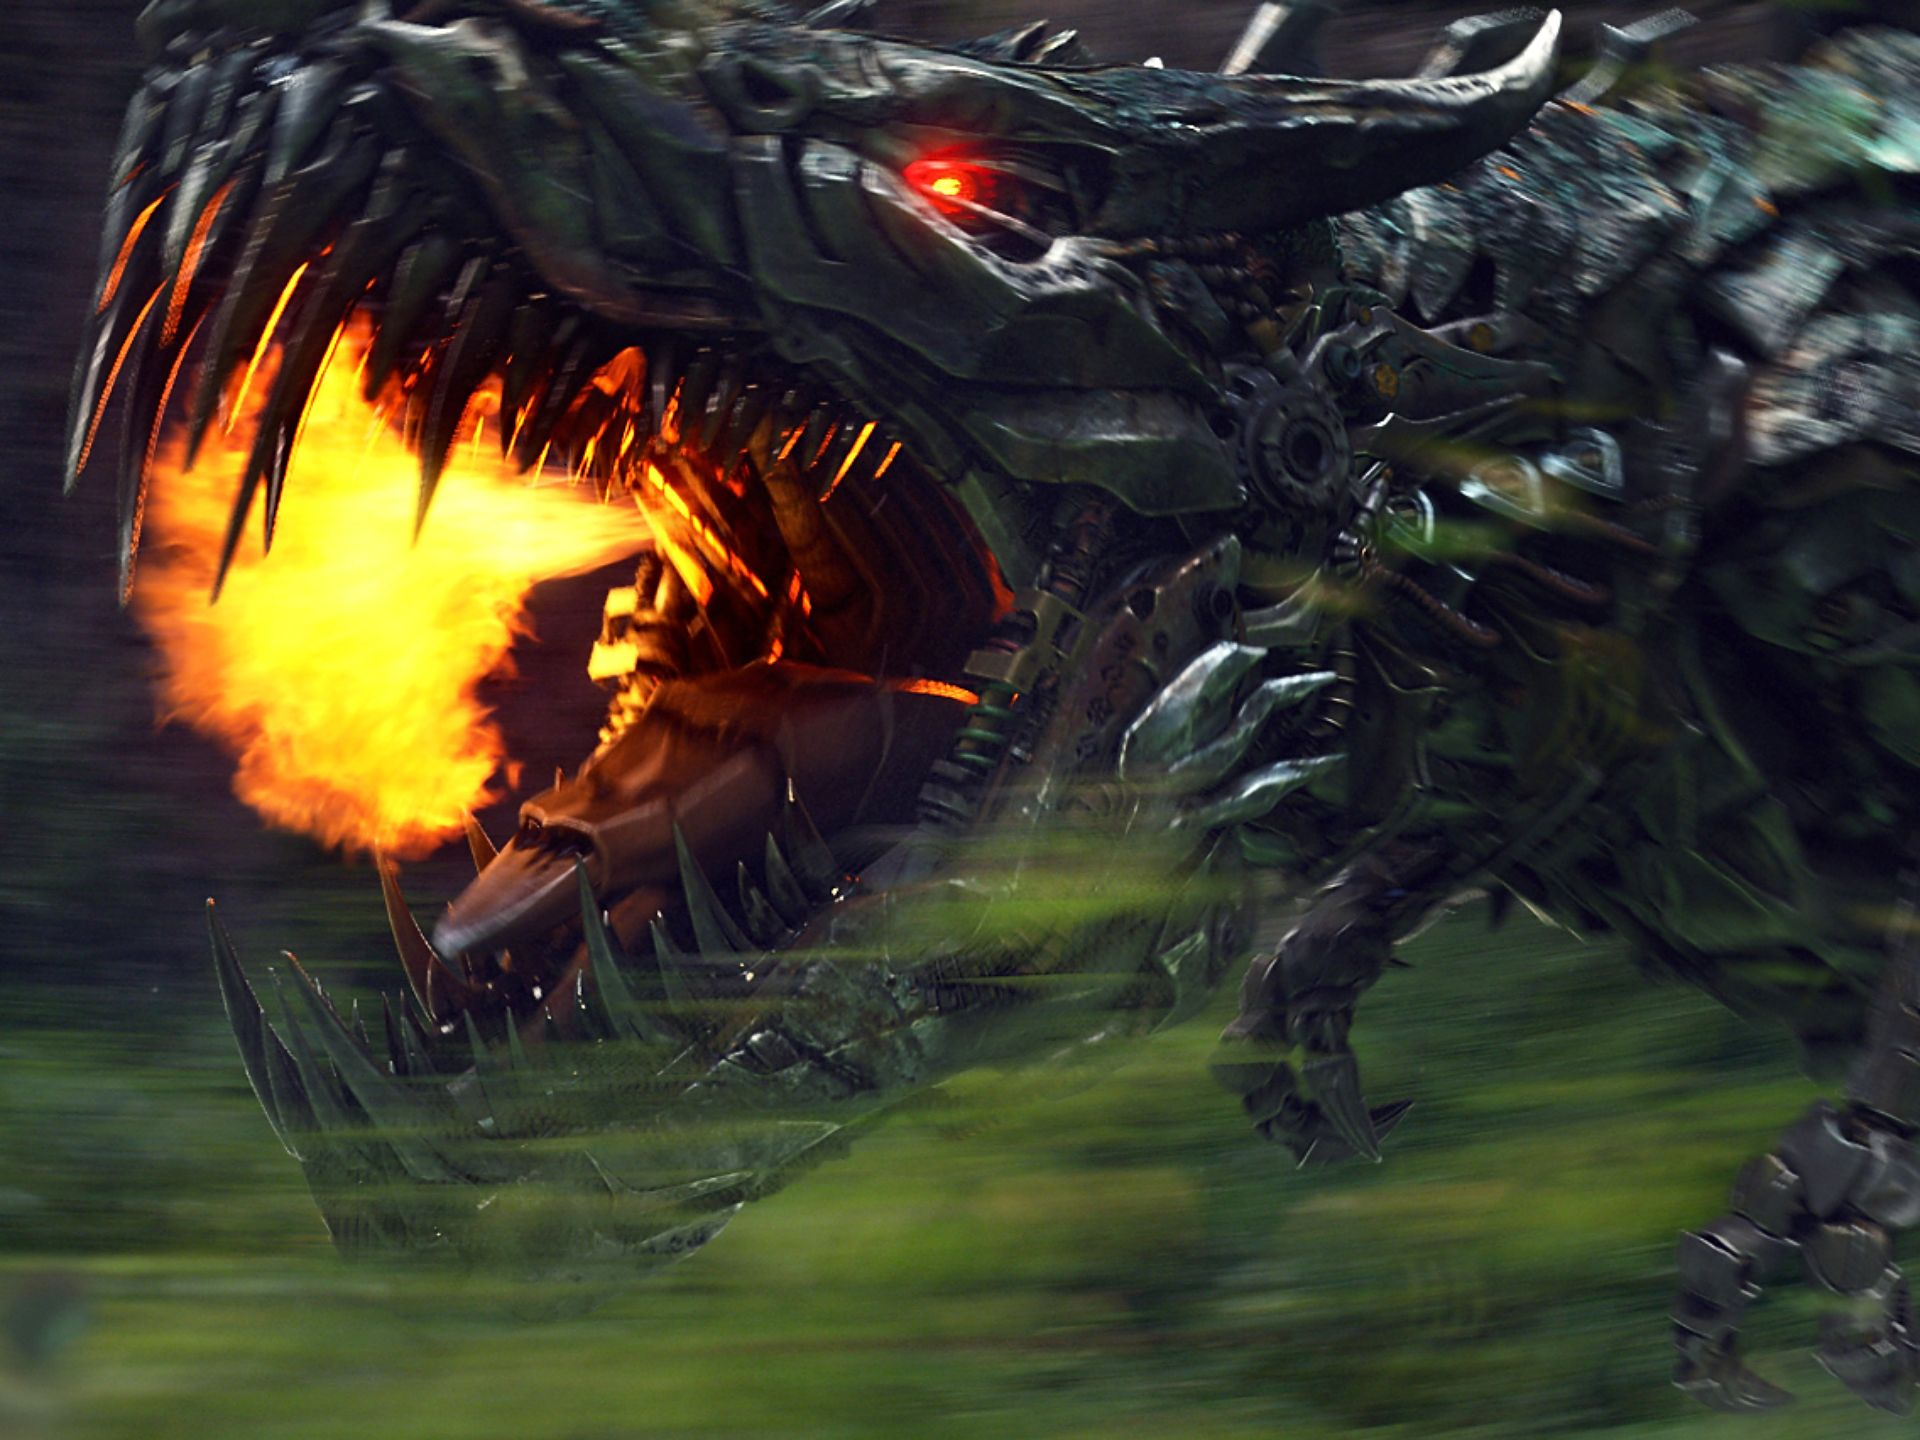 See New Images From Transformers Age Of Extinction